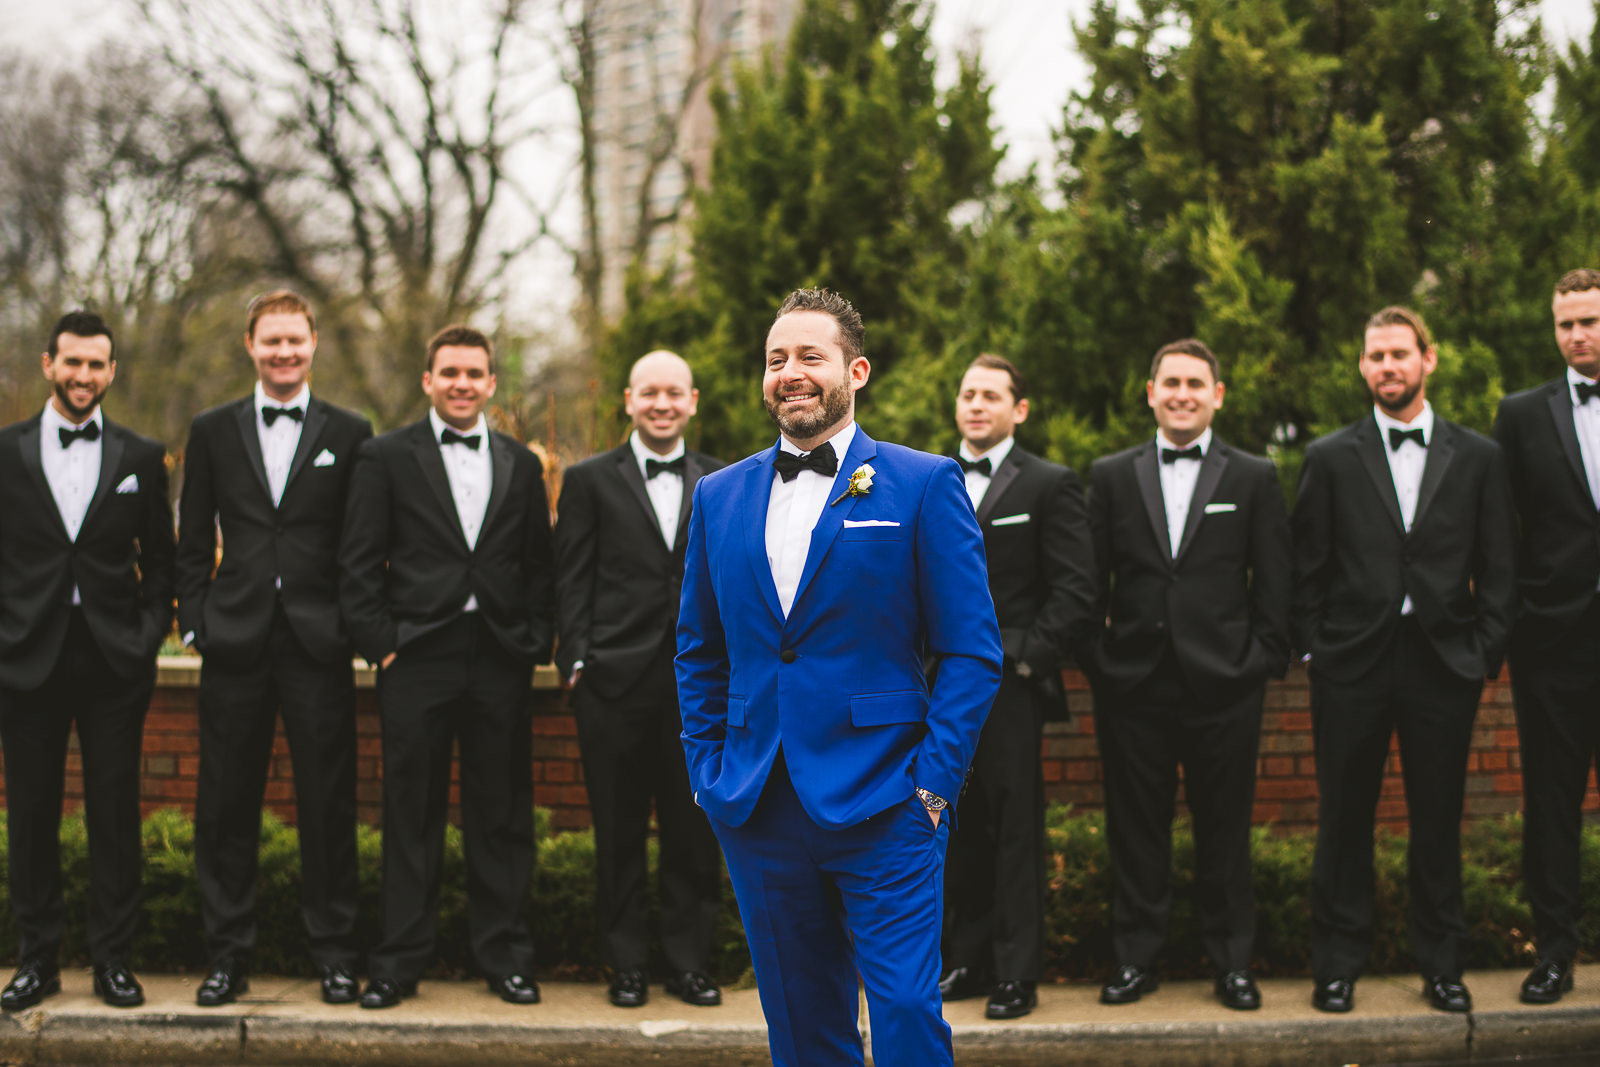 30 groomsmen posing at wedding - Chicago Wedding Photography at Gallery 1028 // Courtnie + David